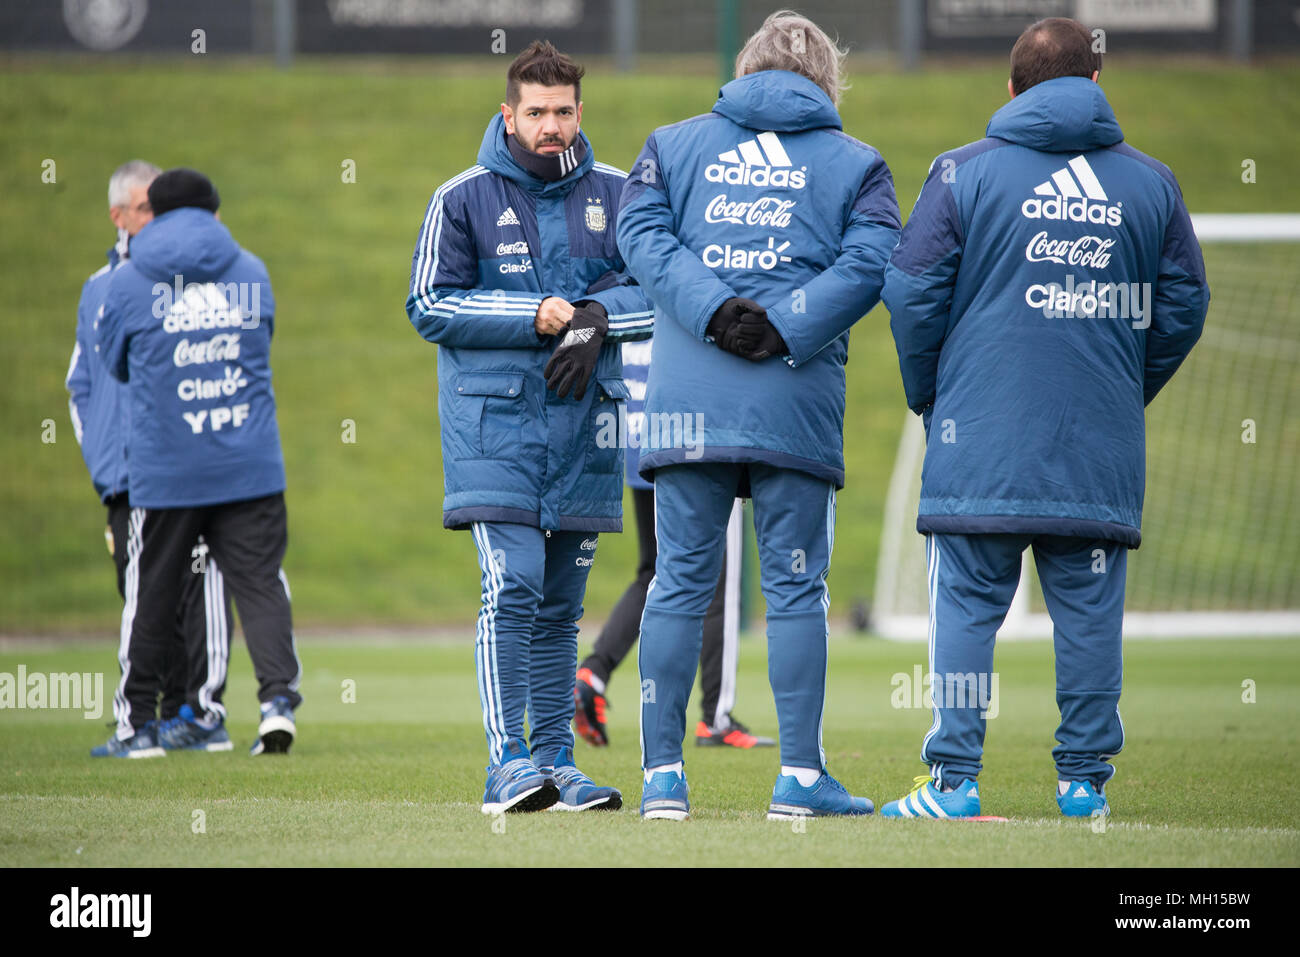 Sergio Aguero, a member of the Manchester City FC and Argentina national football squads, attends a training session at the Etihad Stadium in Manchest - Stock Image